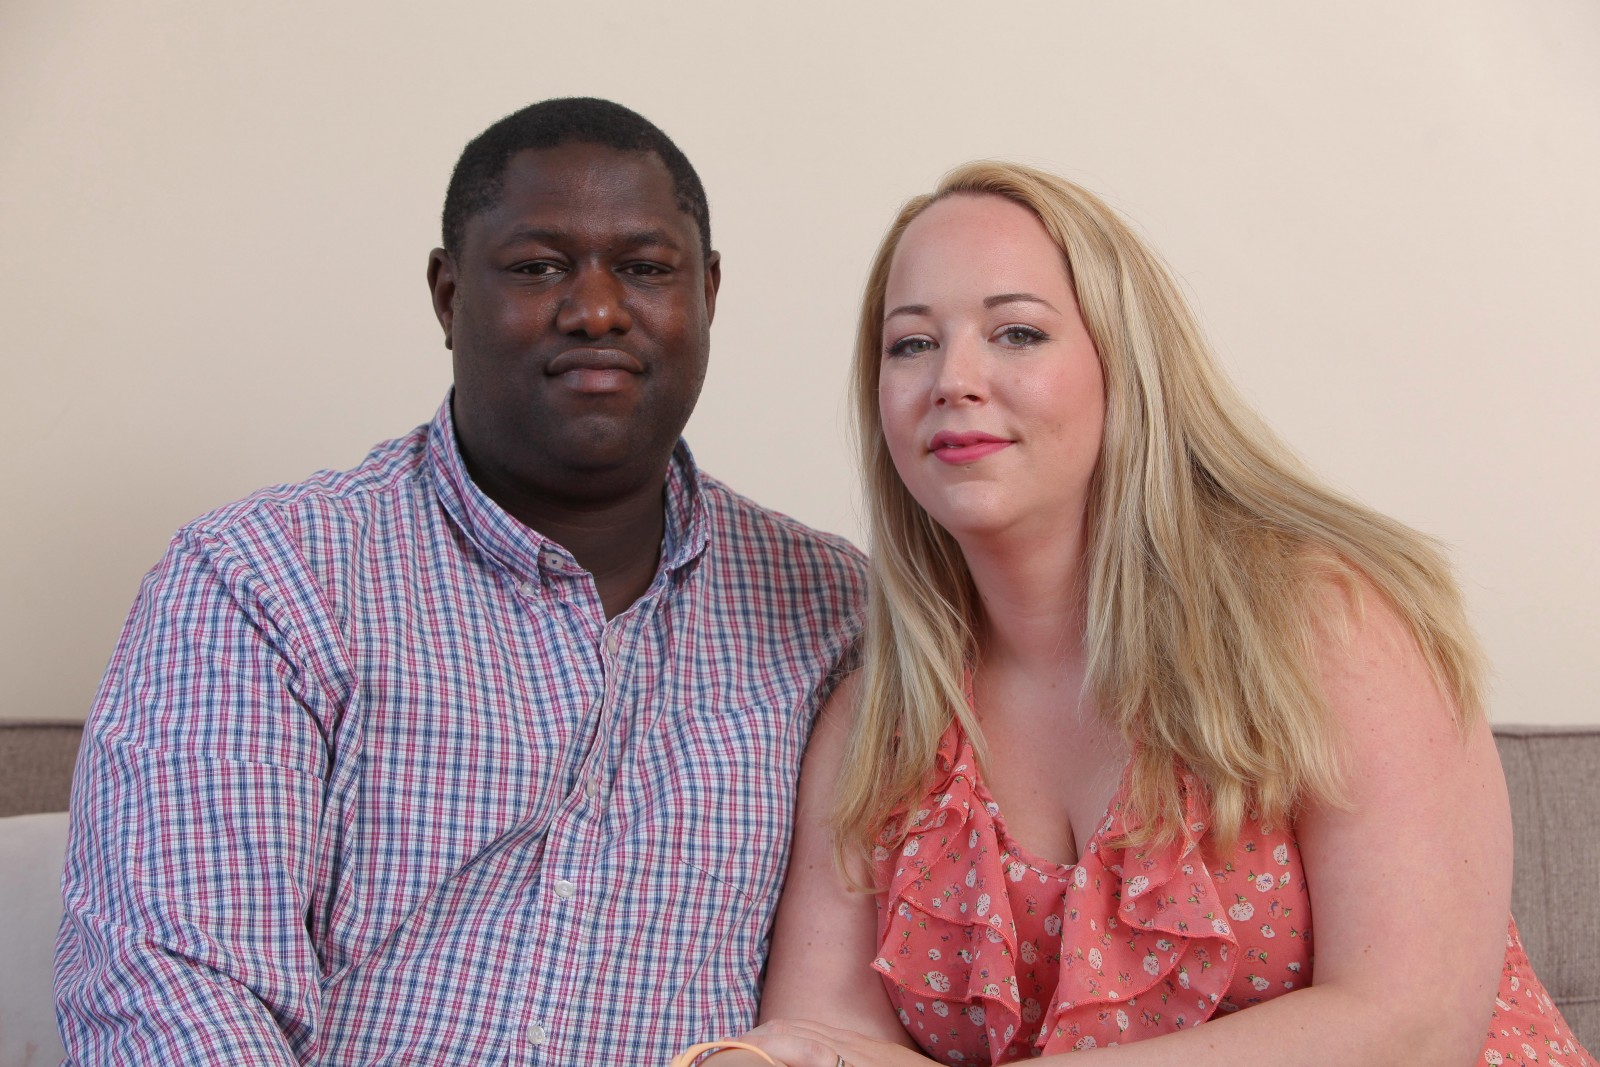 Meet the couple losing their life savings because they ate too much